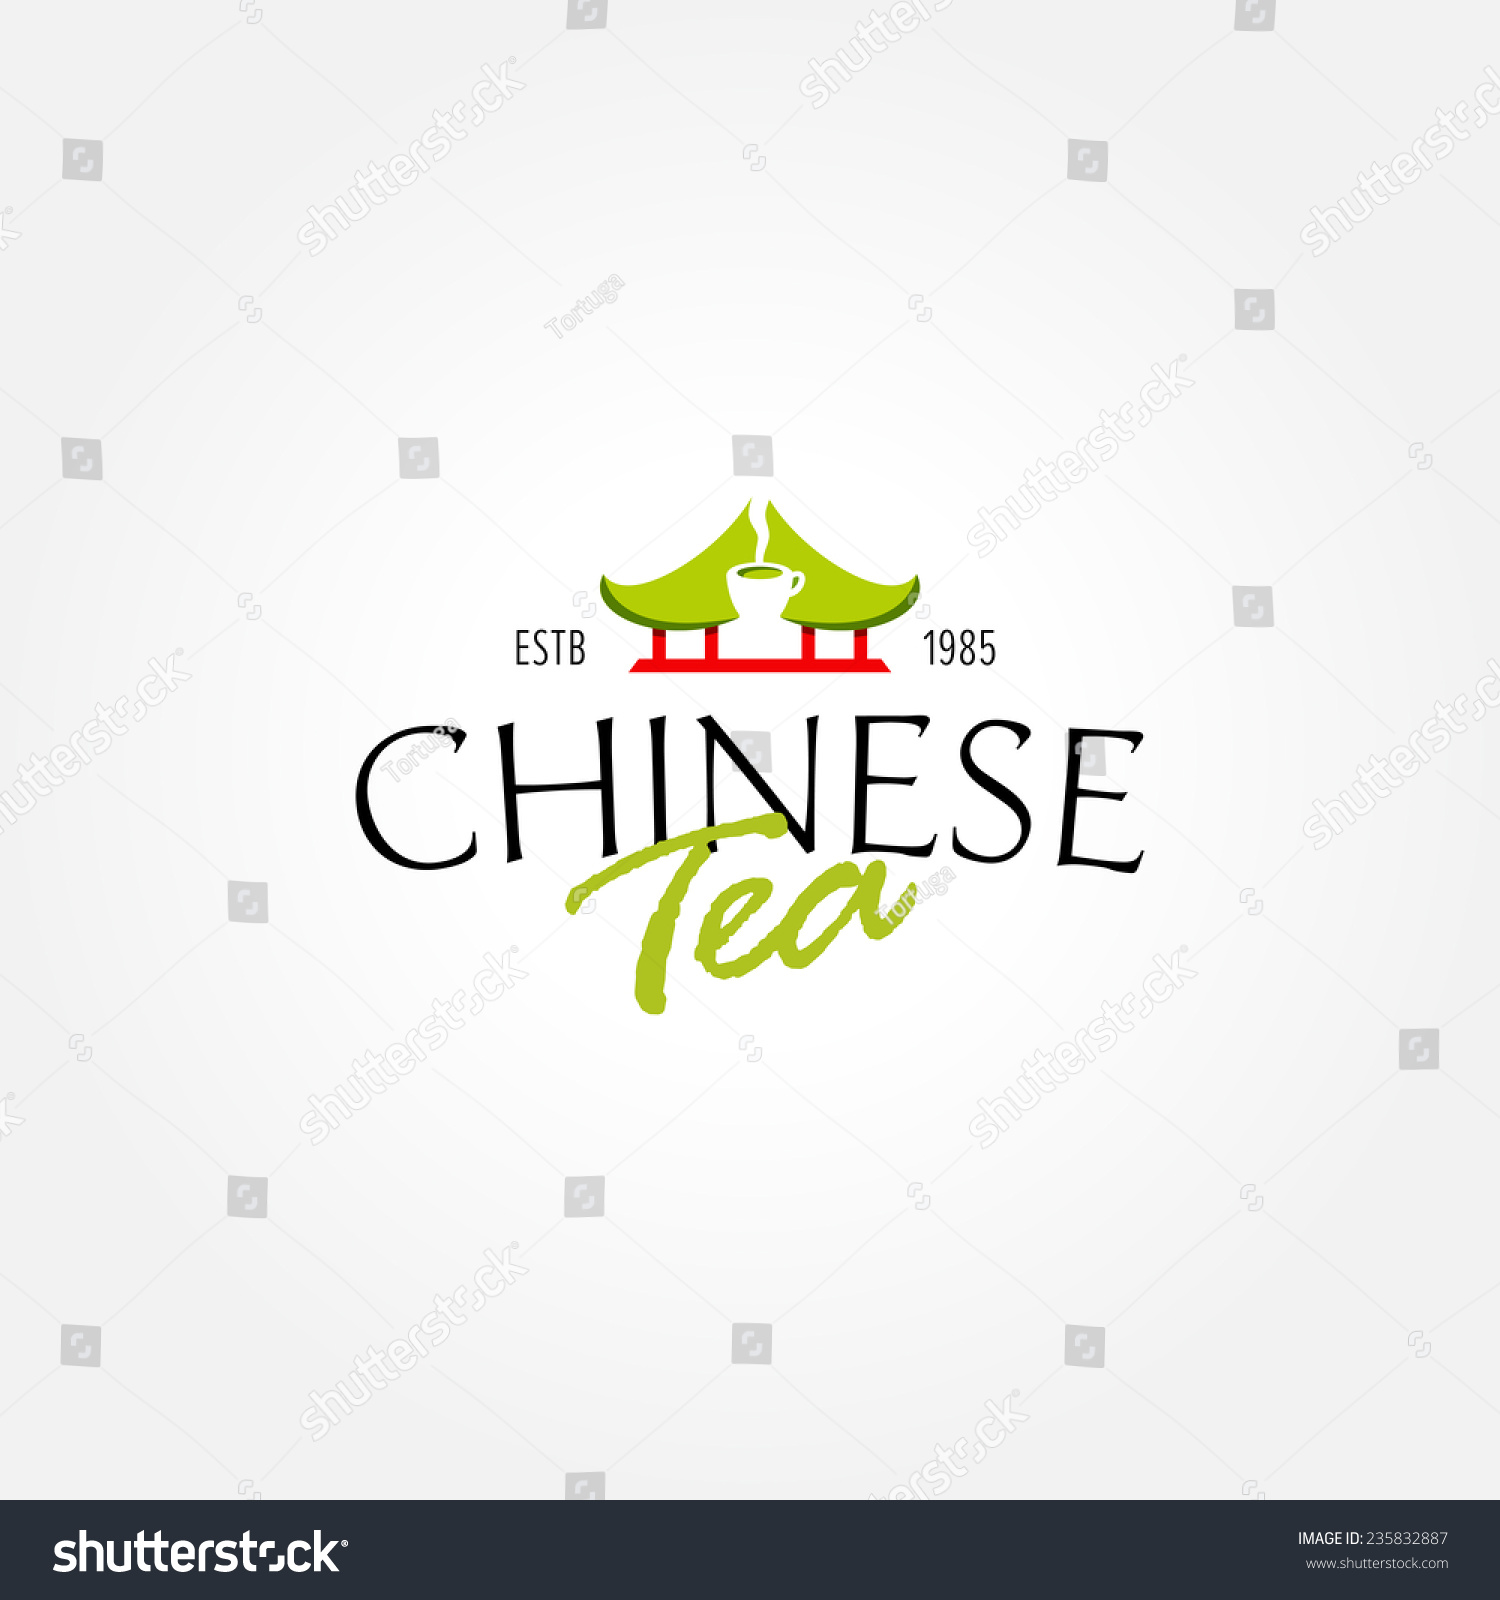 Chinese tea logo symbol icon tea stock vector 235832887 shutterstock chinese tea logo symbol icon for tea shop cafe tea house restaurant buycottarizona Image collections